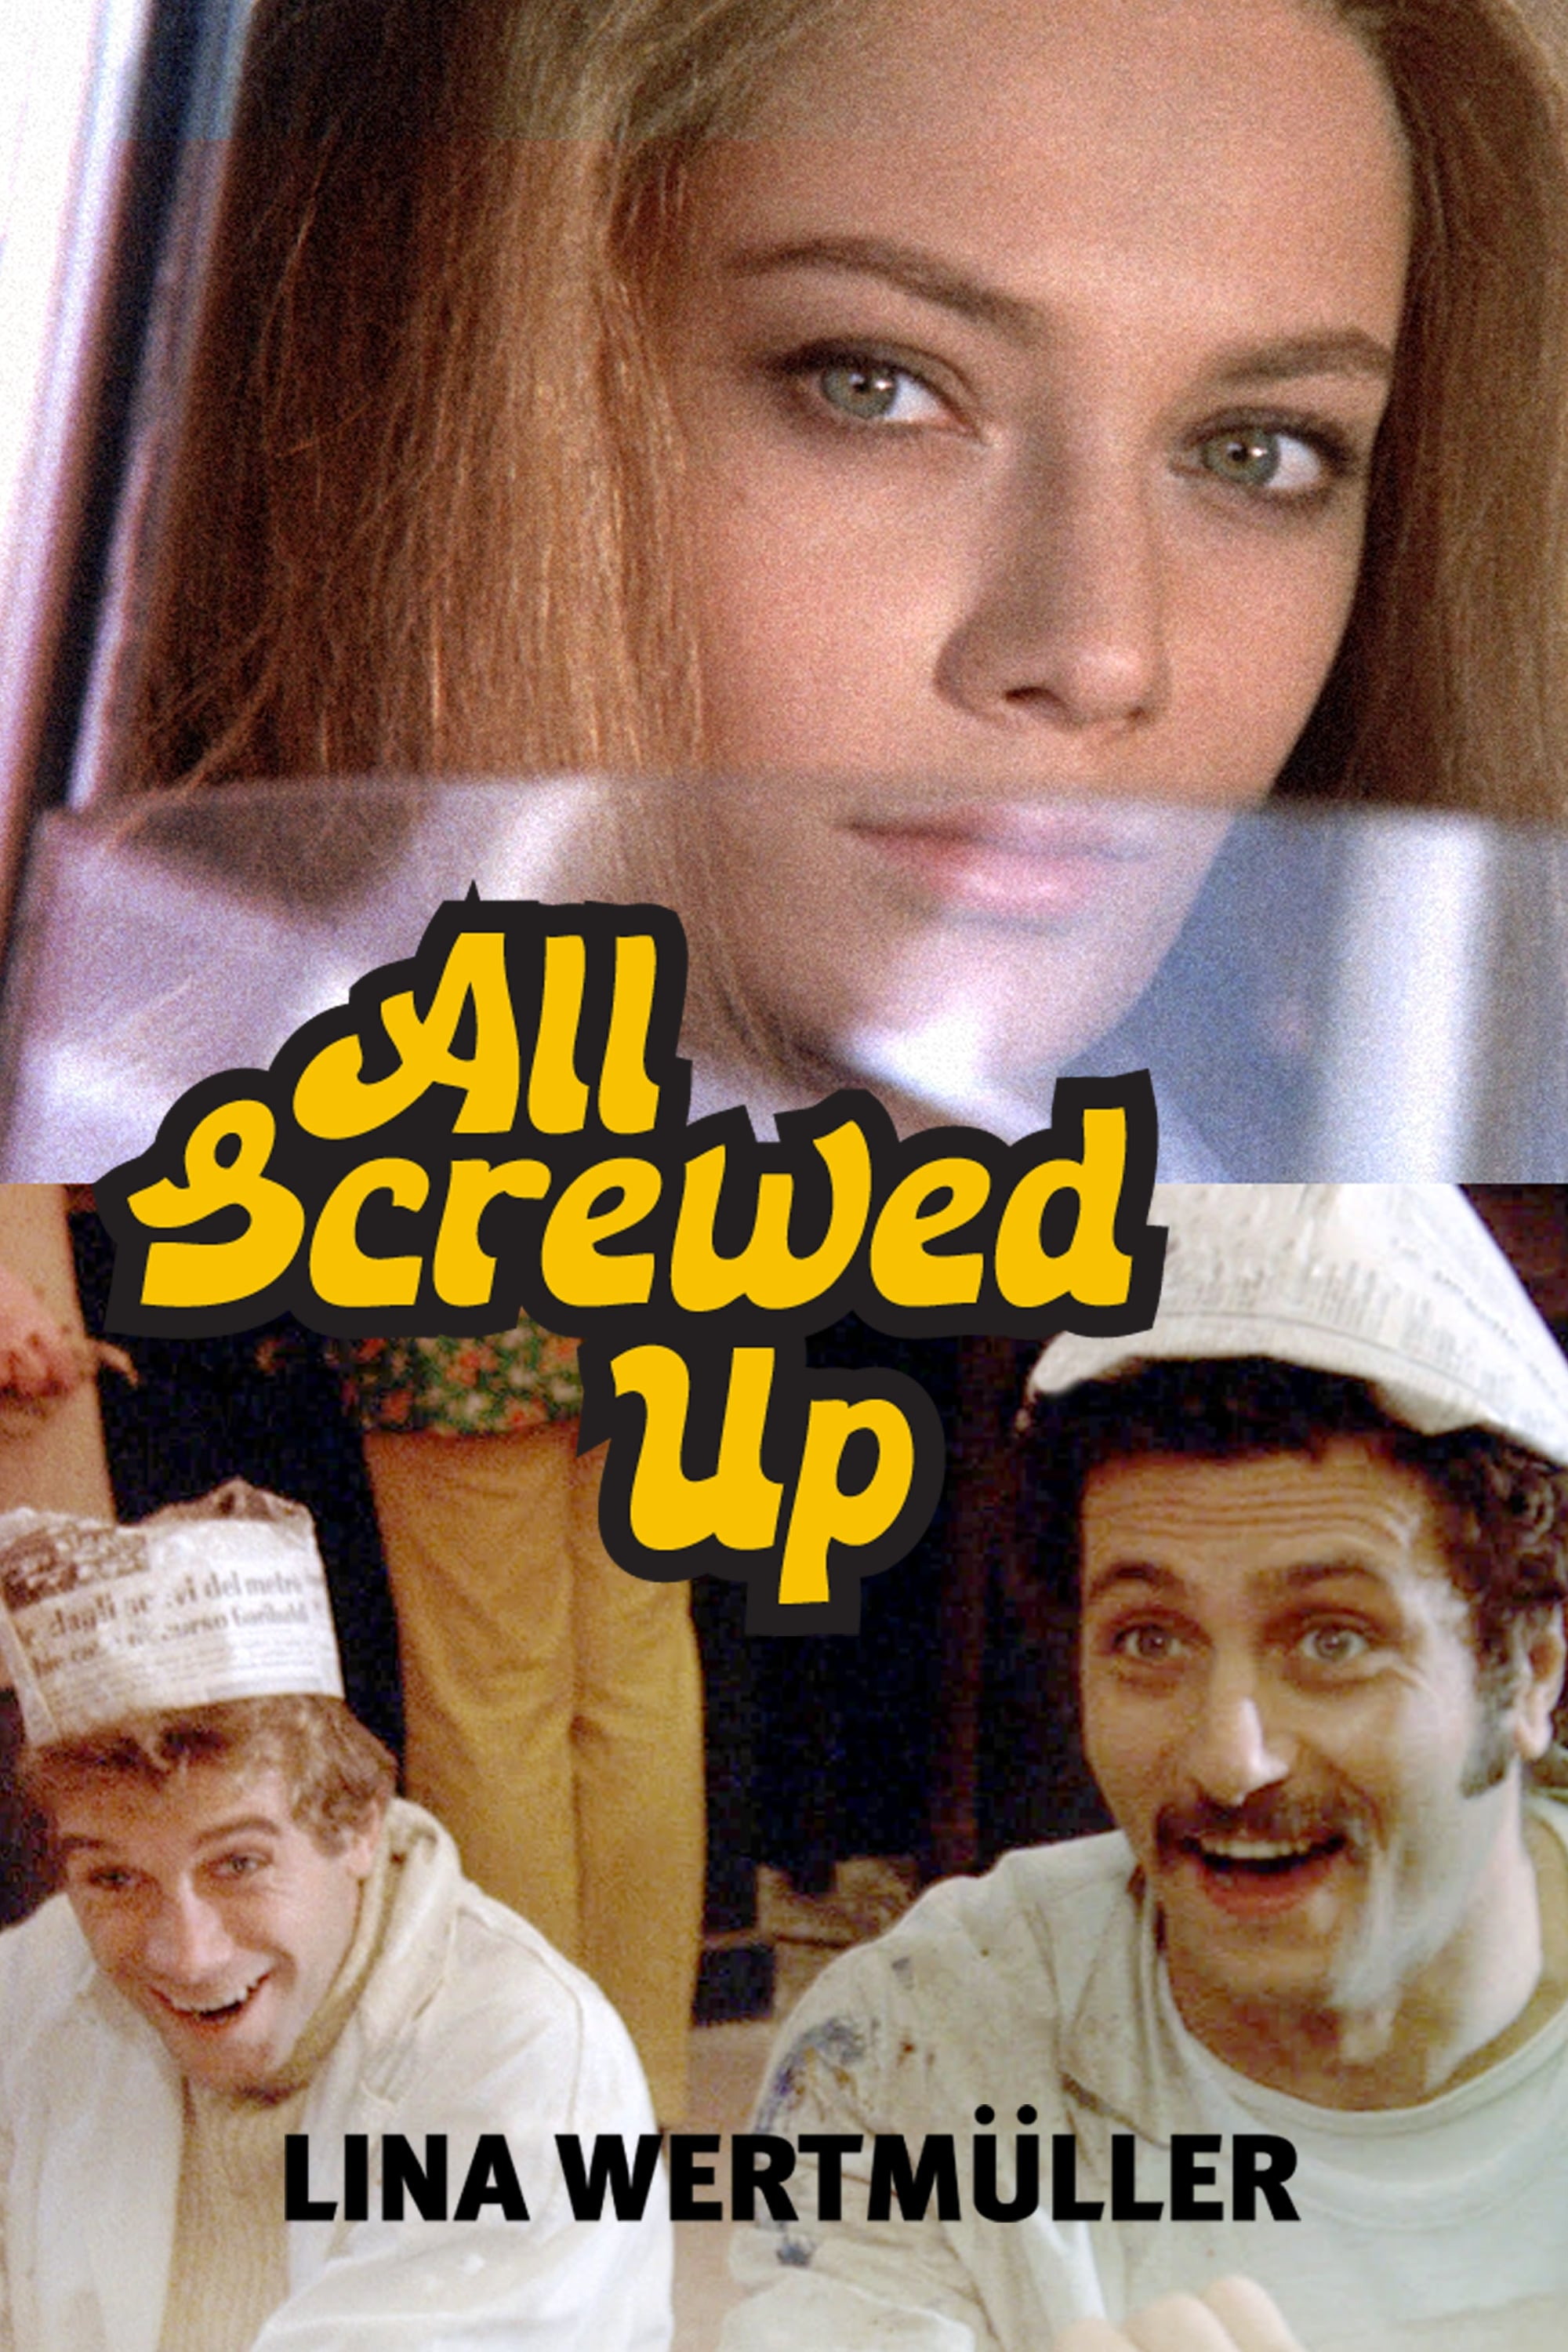 All Screwed Up (1974)